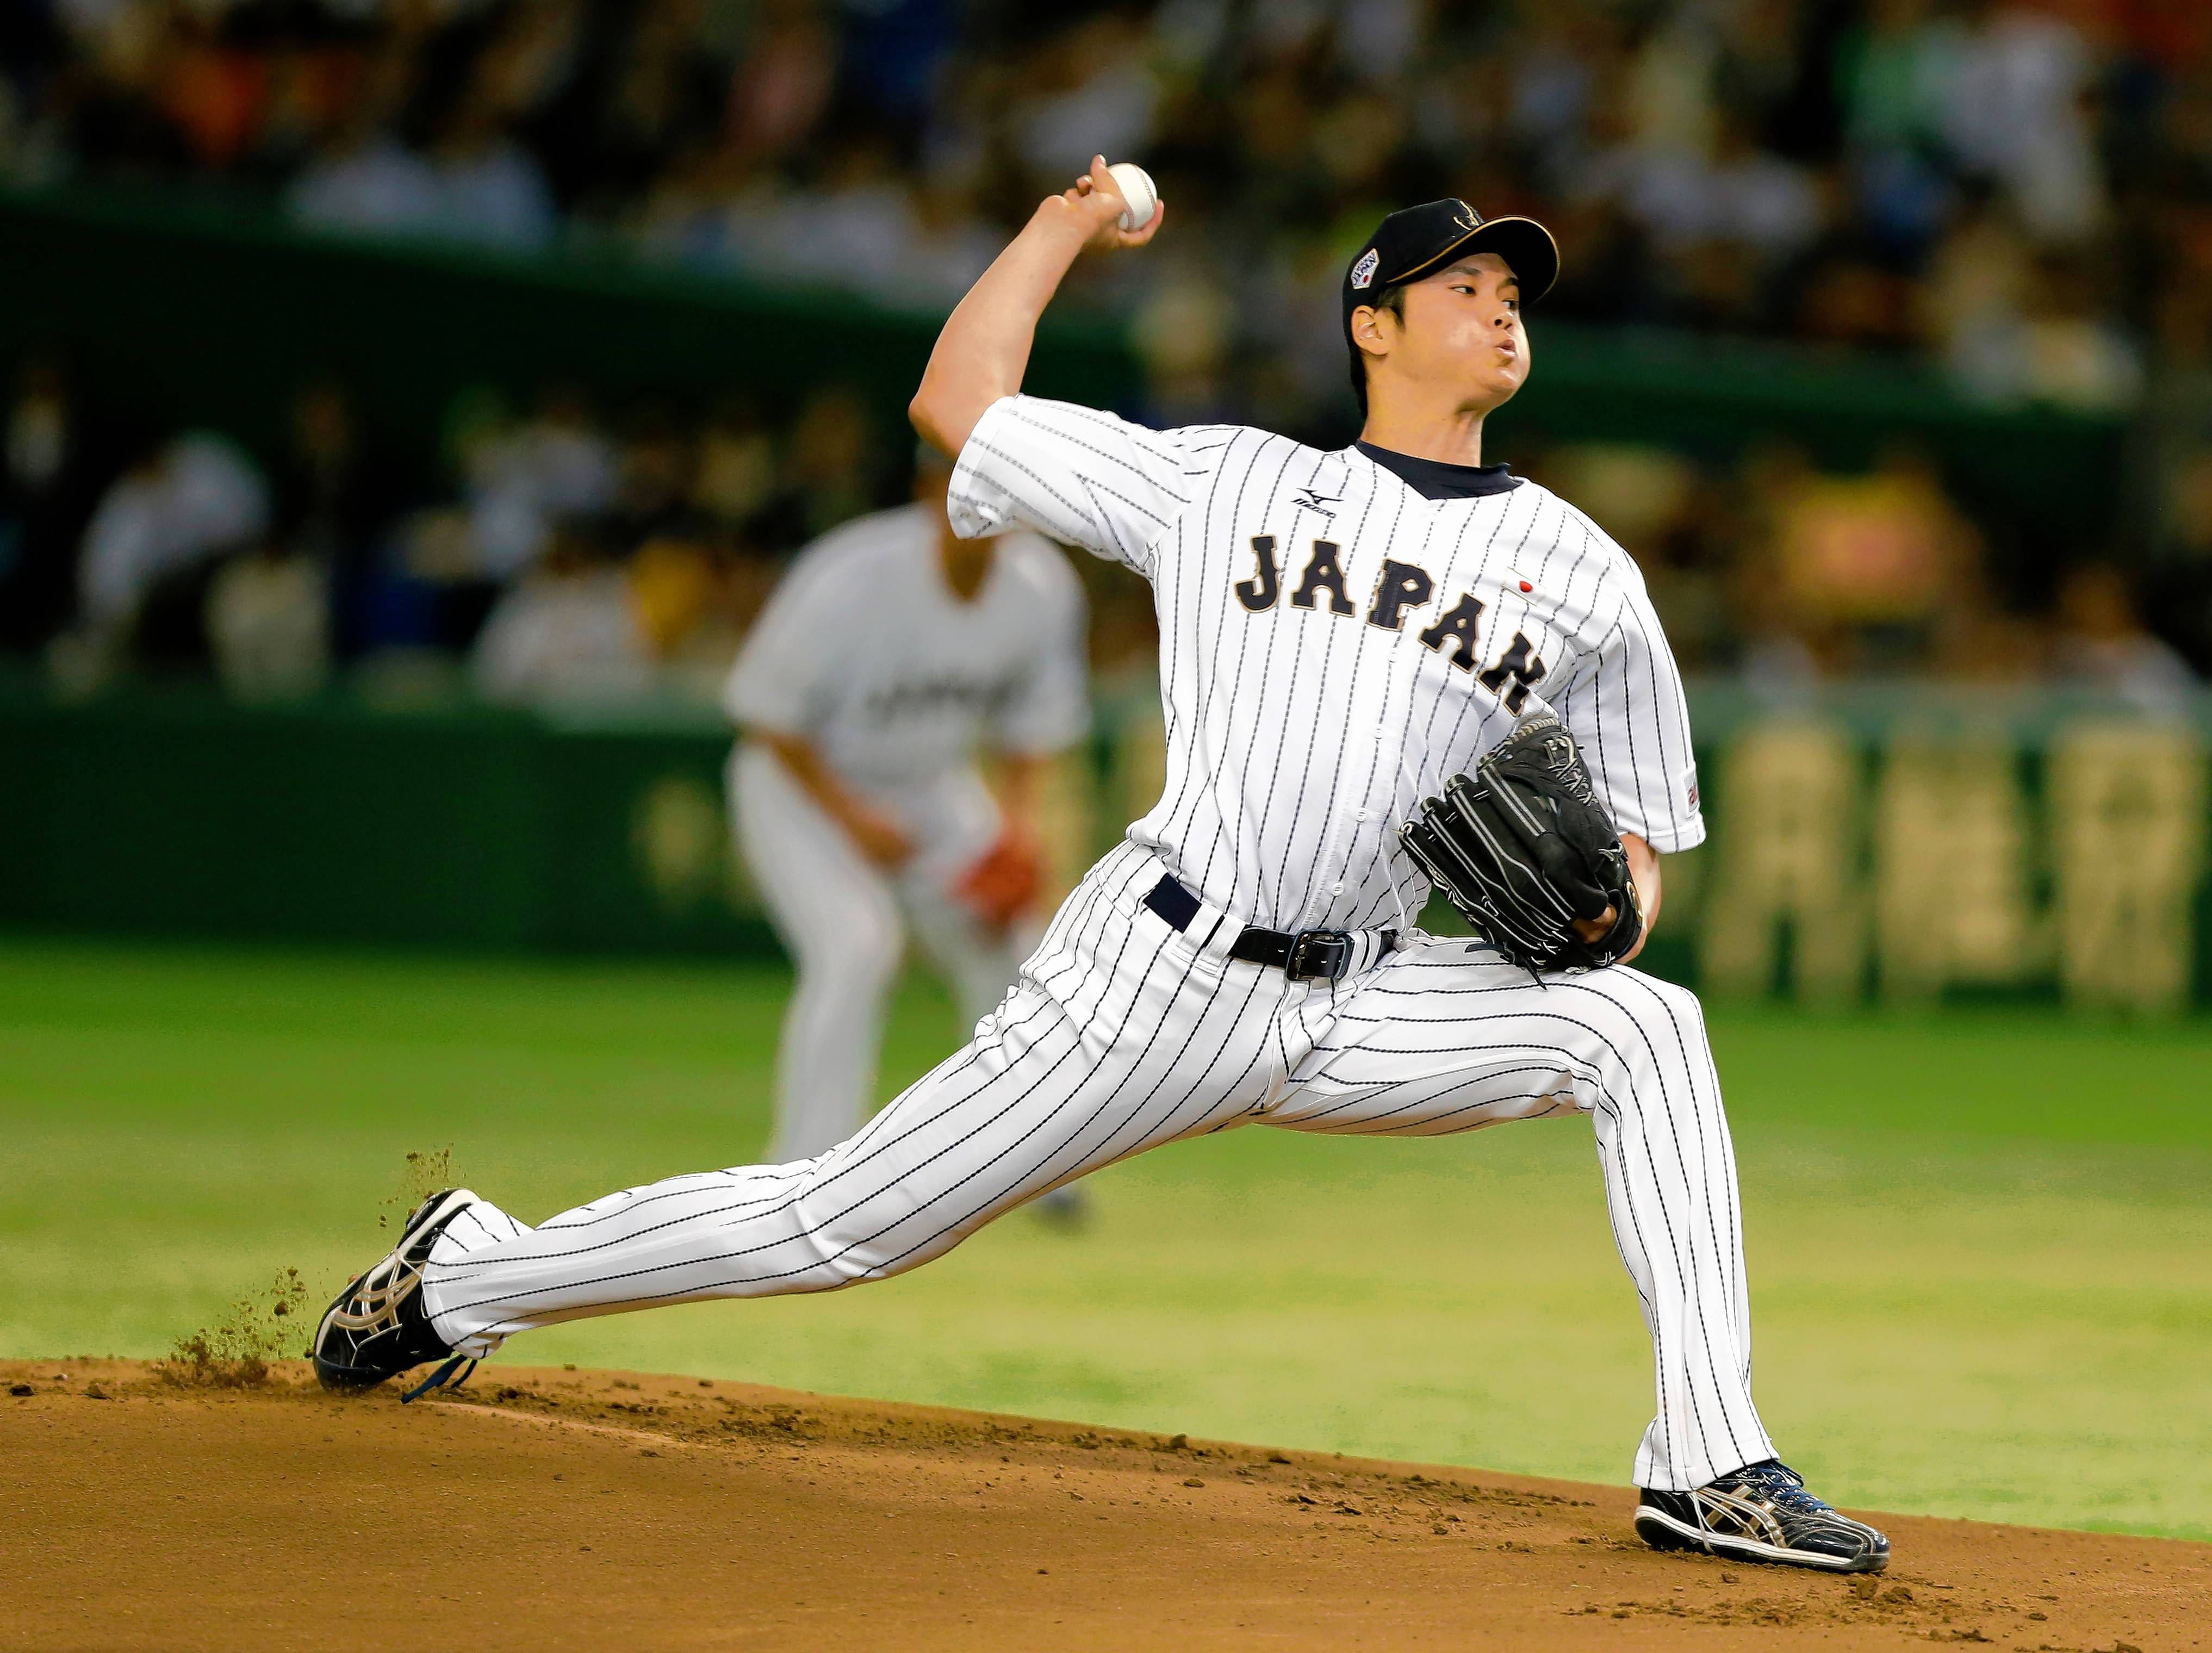 Shohei Otani of Japan has until Dec. 22 to sign with a major-league team, and the Chicago Cubs are among seven finalists for the 23-year-old baseball star.